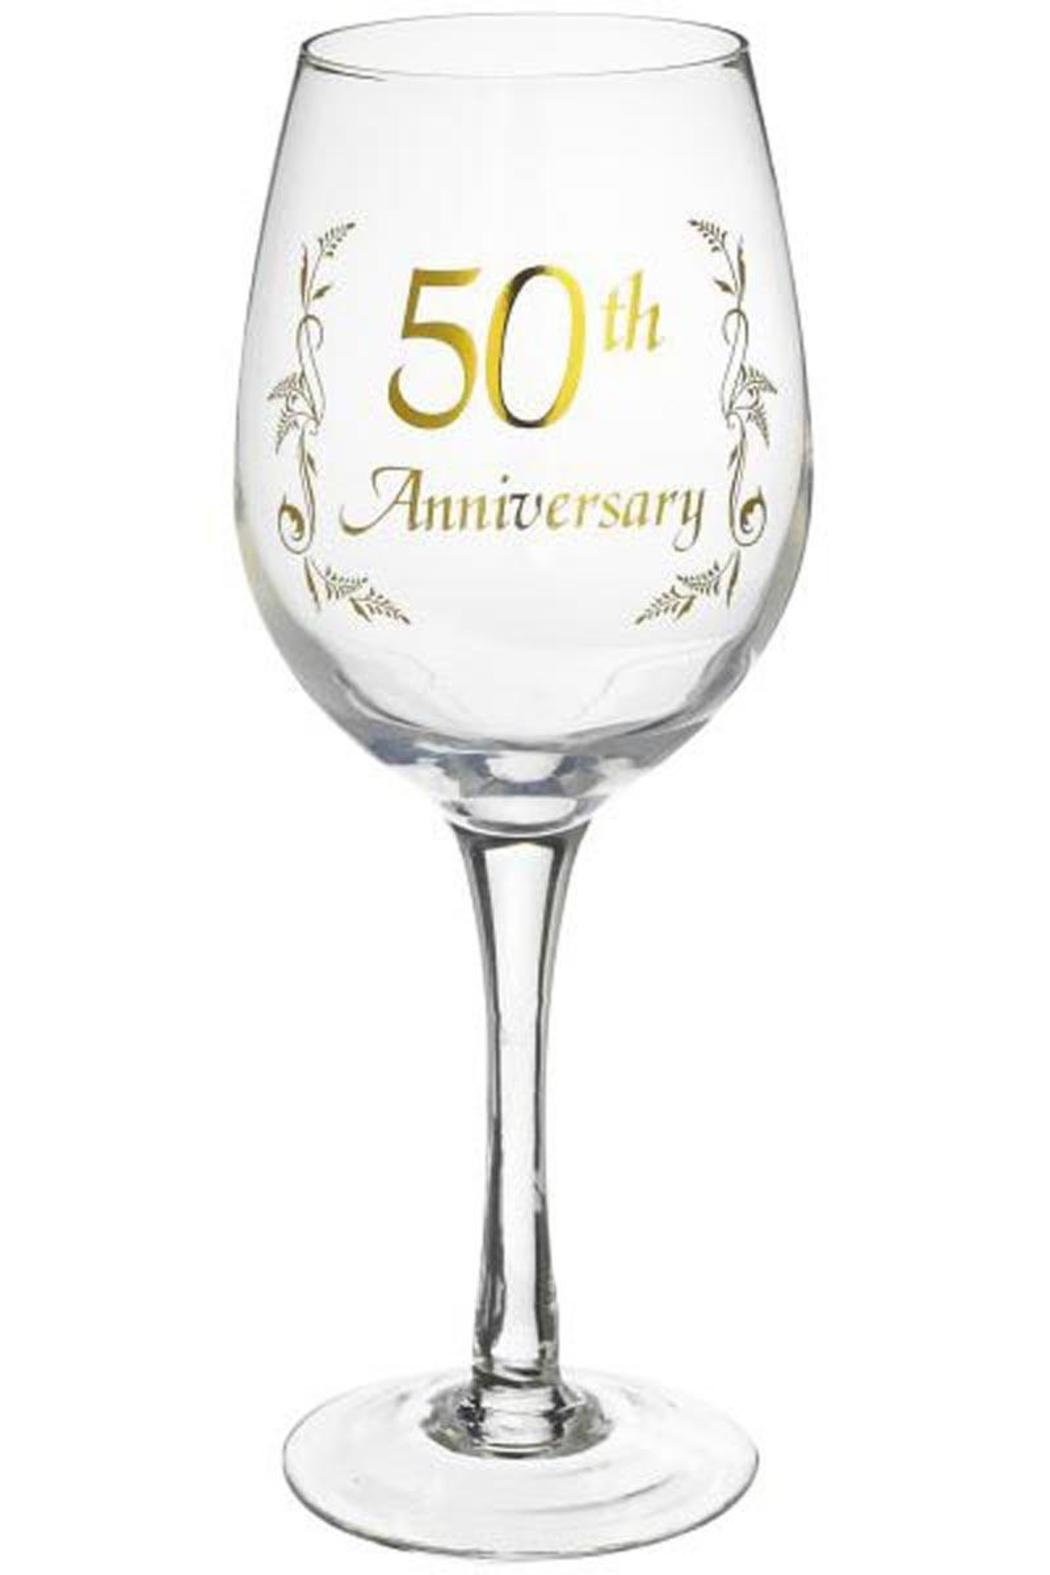 Ganz 50th Anniversary Wine Glass From Alabama By Jubilee